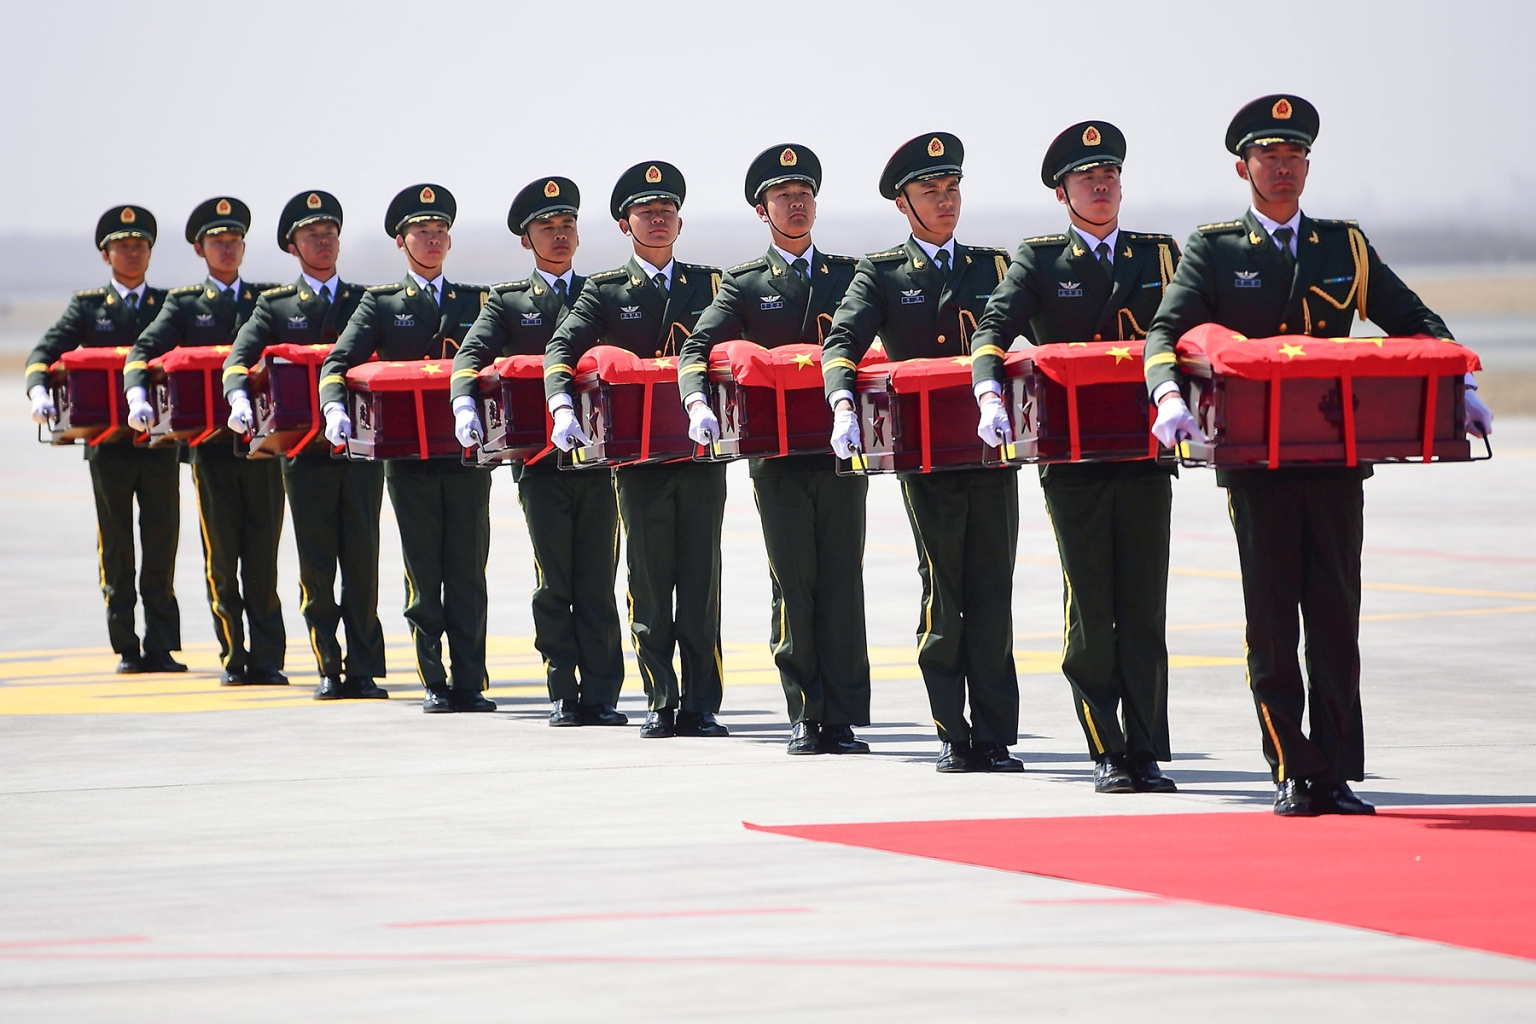 Chinese honor guards carry caskets containing the remains of Chinese soldiers at the Shenyang Taoxian International Airport in Shenyang on April 3. The remains of 10 Chinese soldiers killed during the 1950-53 Korean War were returned from South Korea for permanent burial. STR/AFP/Getty Images